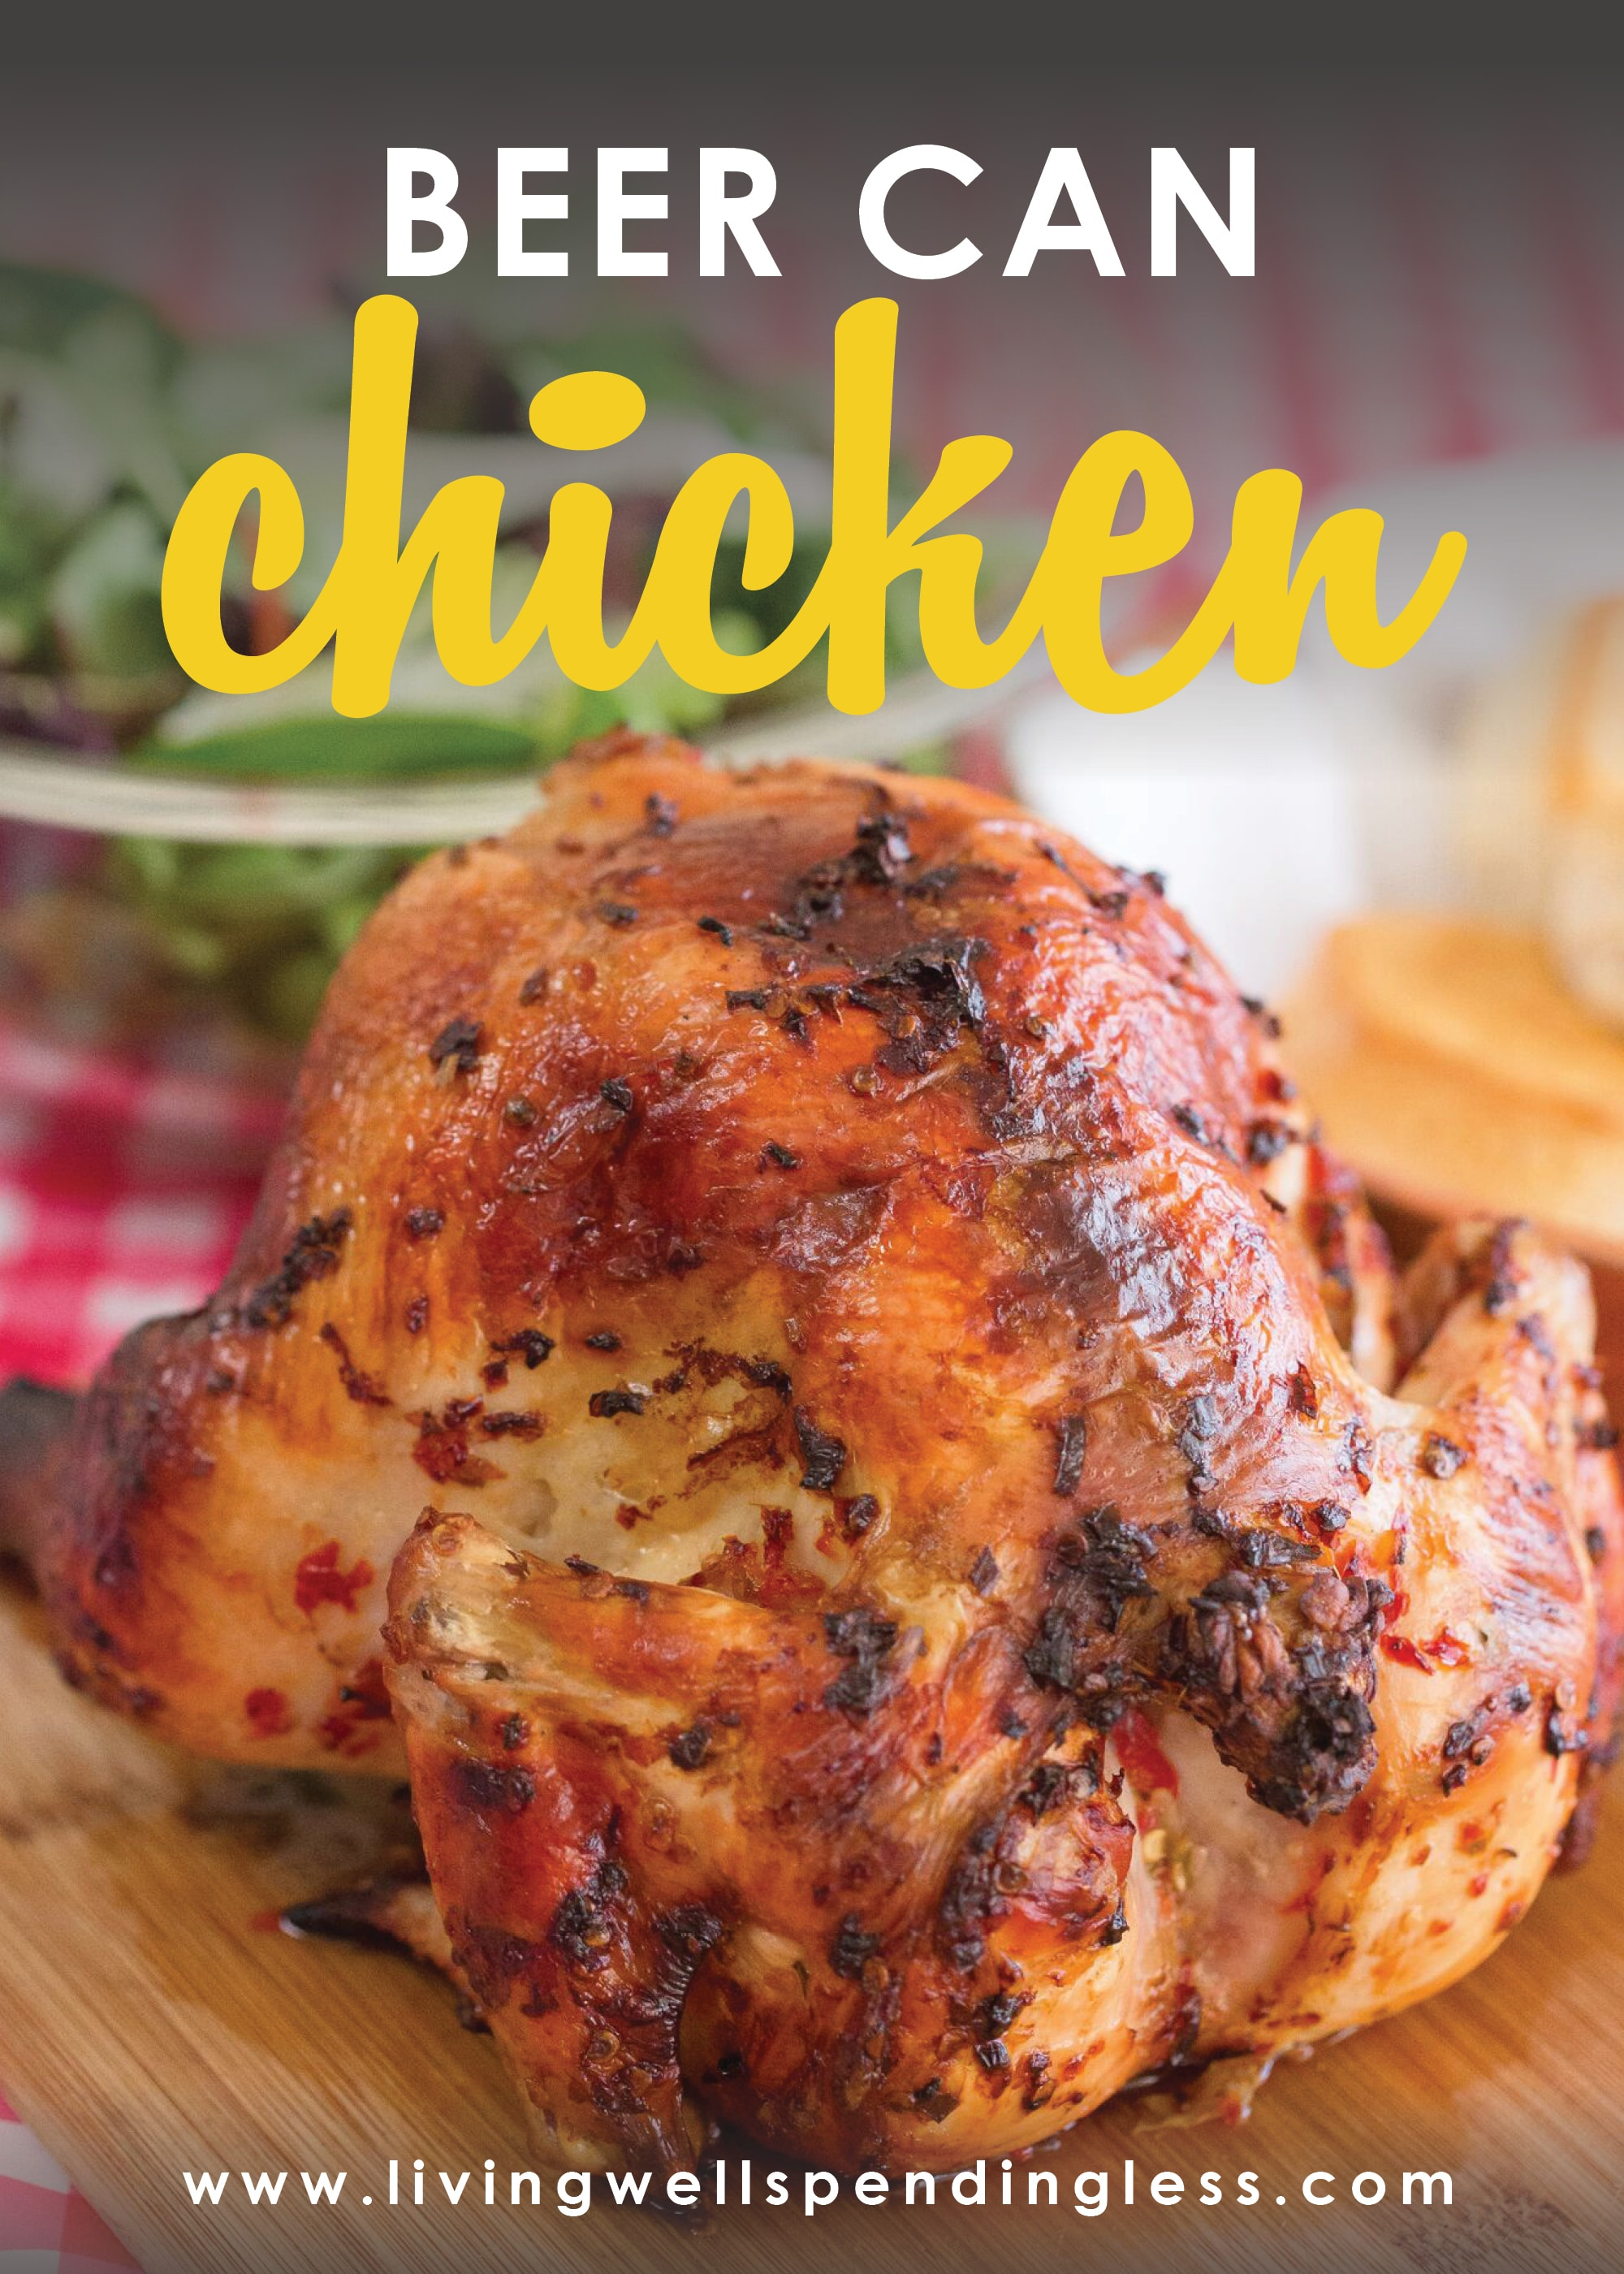 Beer Can Chicken | Easy 4 Ingredient Dinner Recipe from Living Well Spending Less